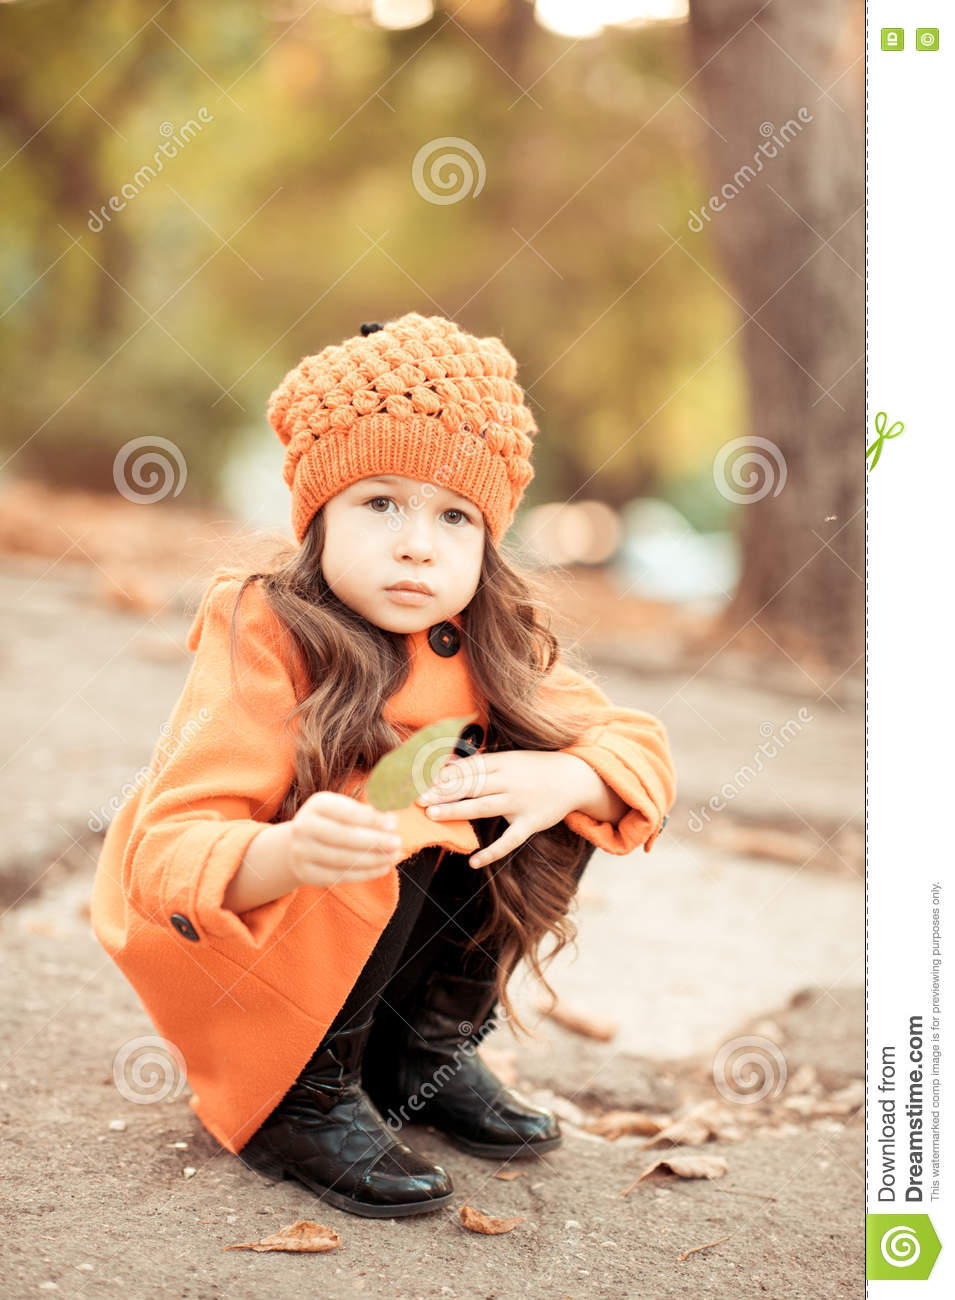 cute baby girl in winter clothes stock image - image of fashion